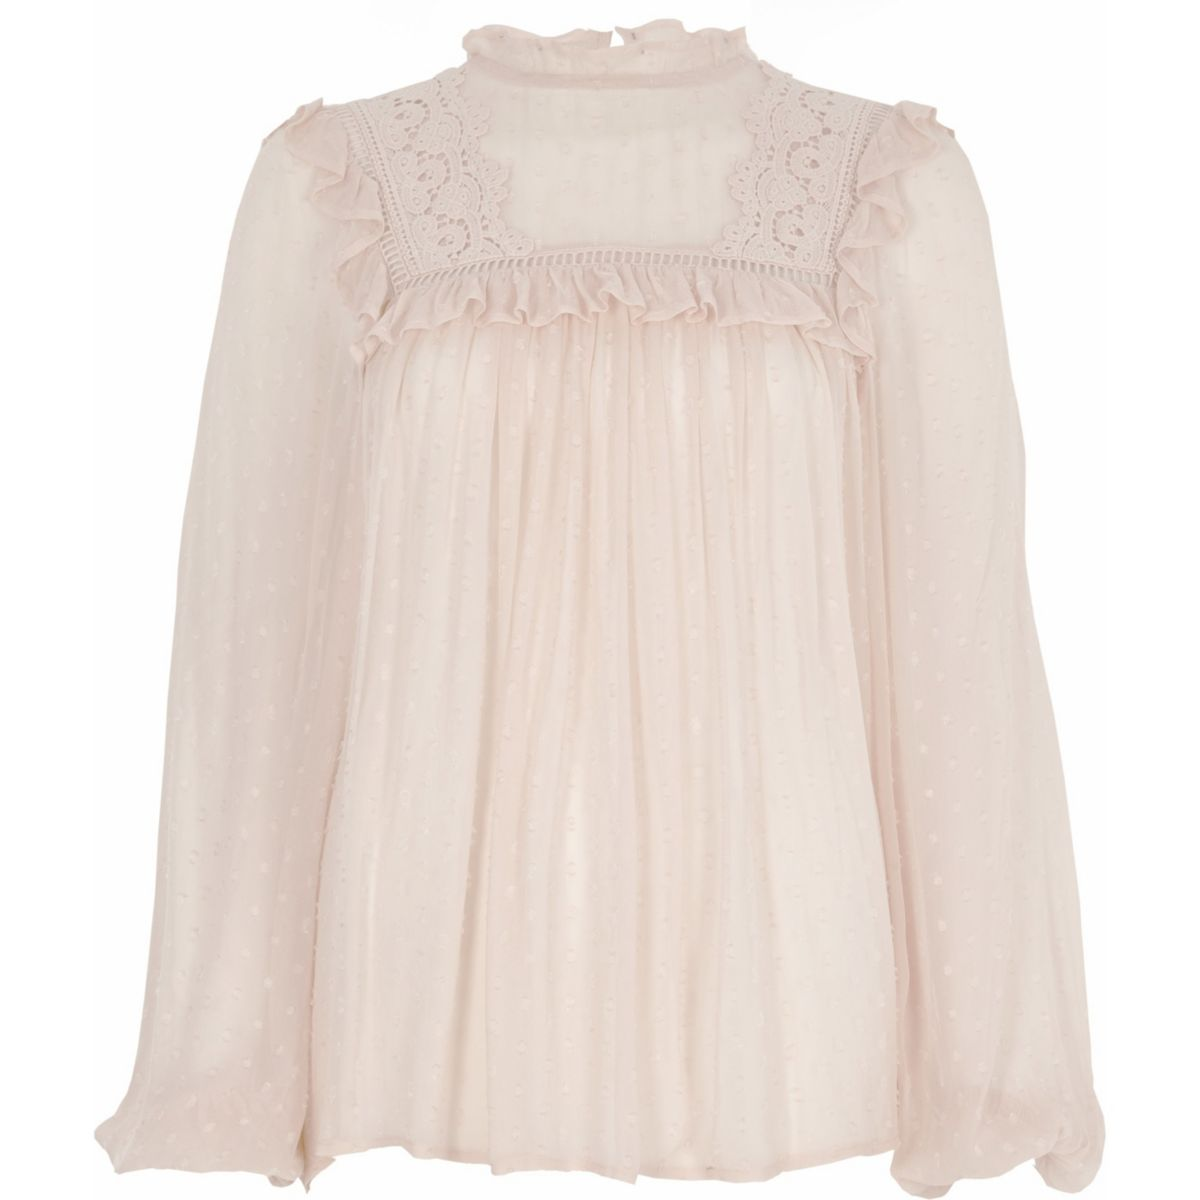 Light pink dobby mesh embroidered top